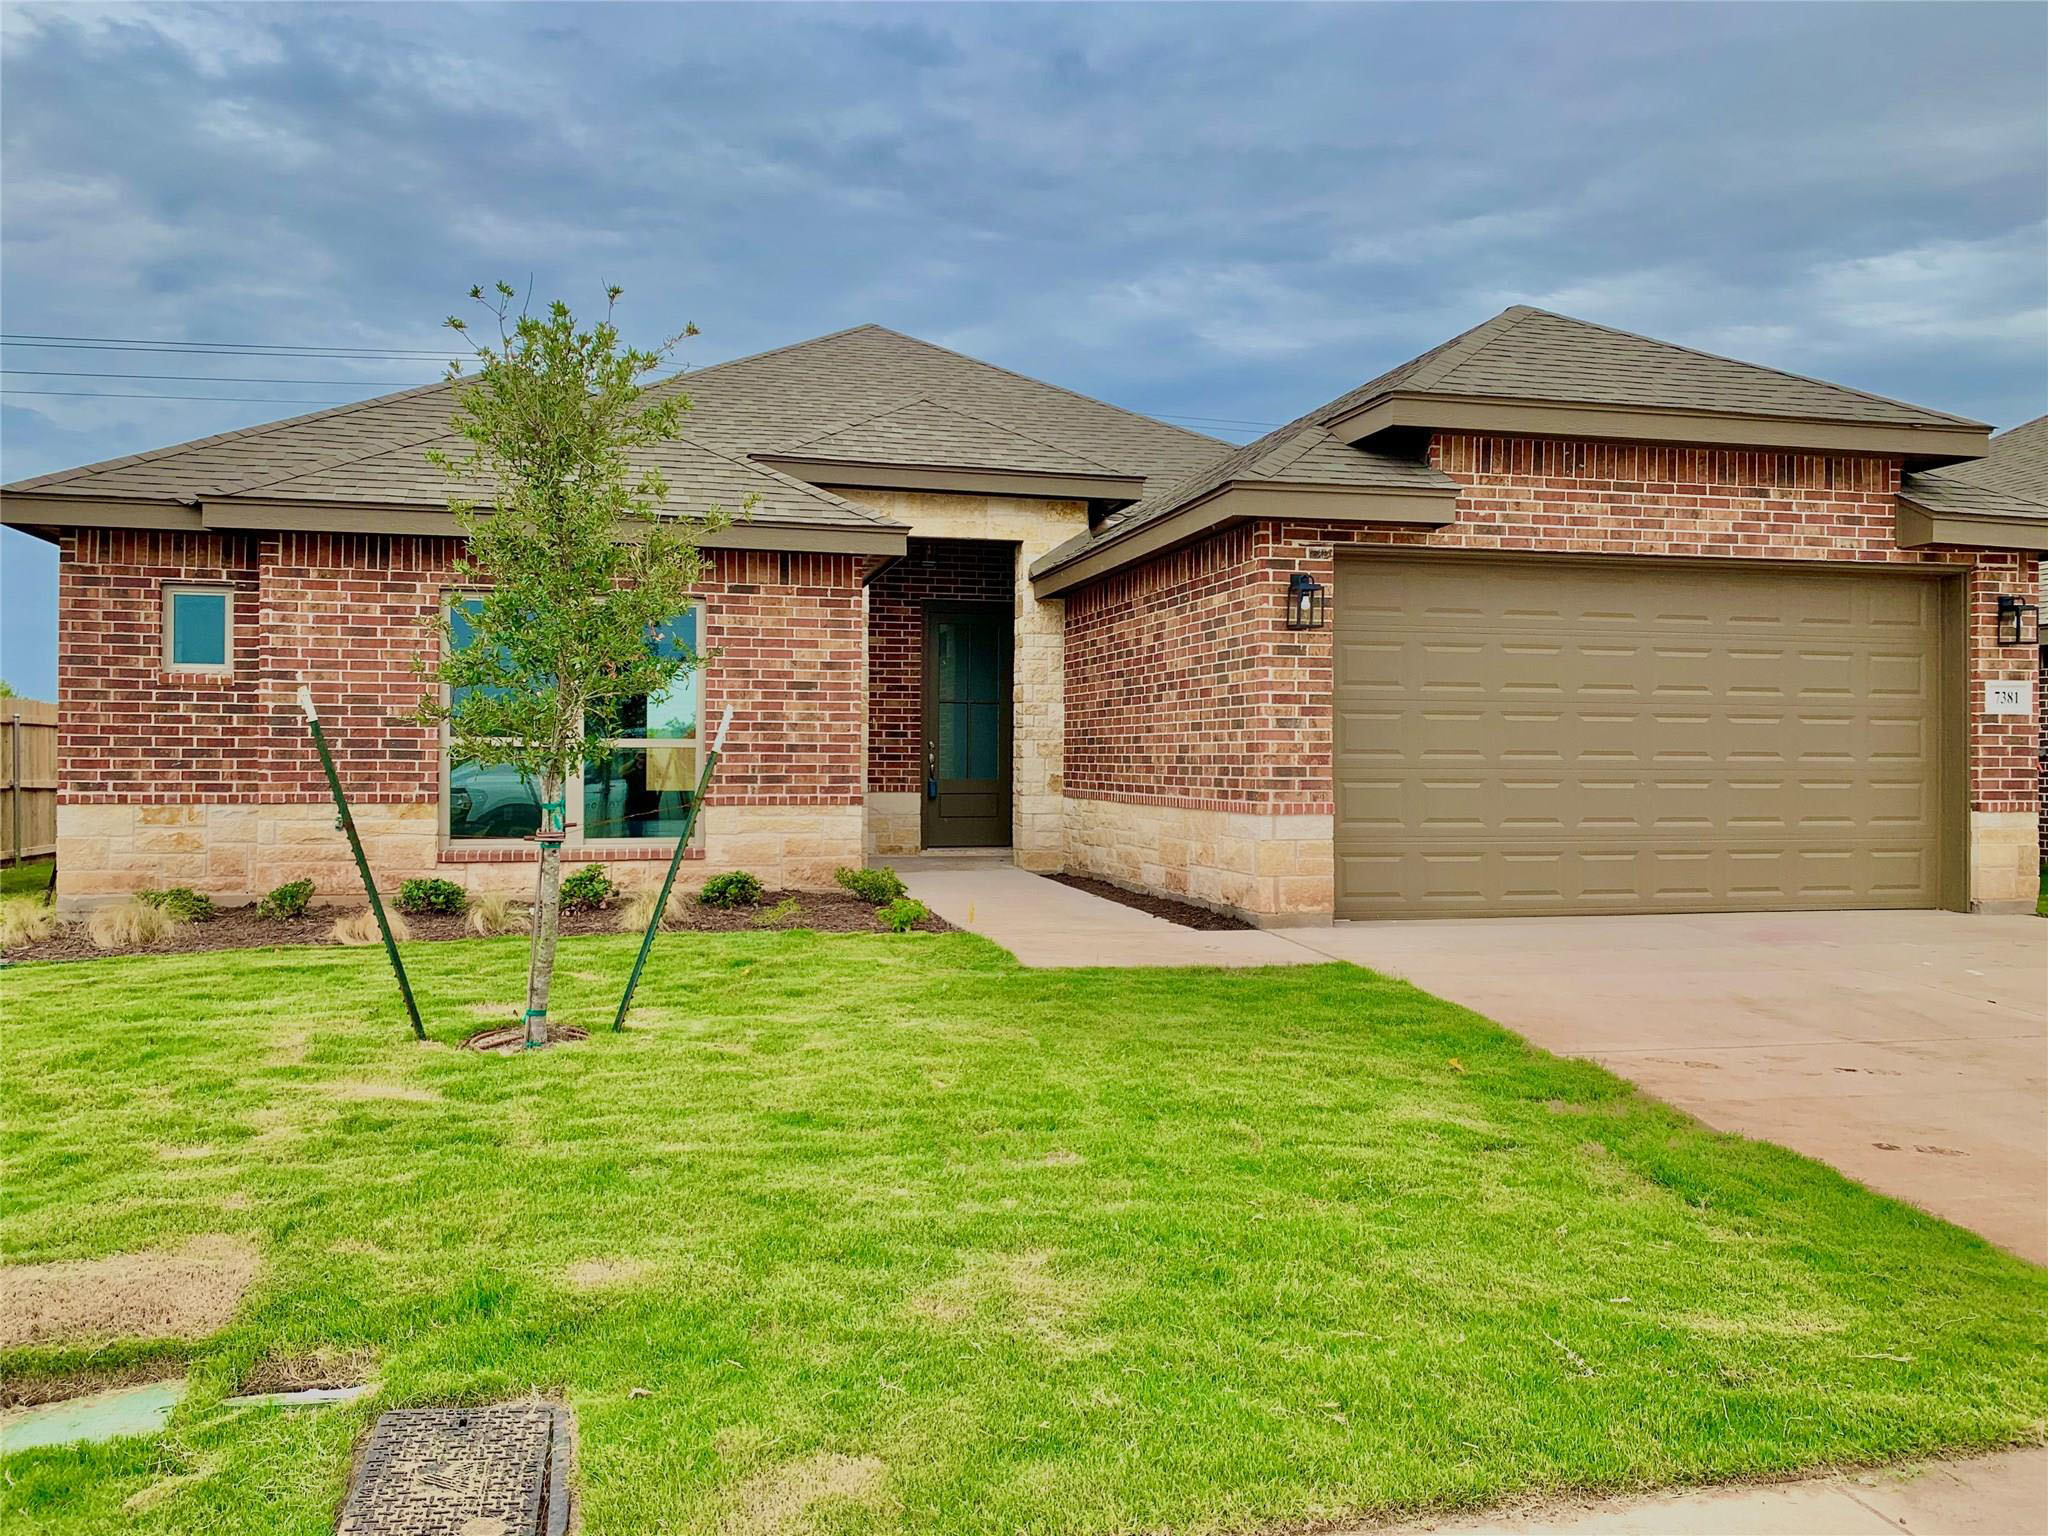 San Angelo Custom Home Builder - 7381 Wildflower Way, Abilene TX 79602